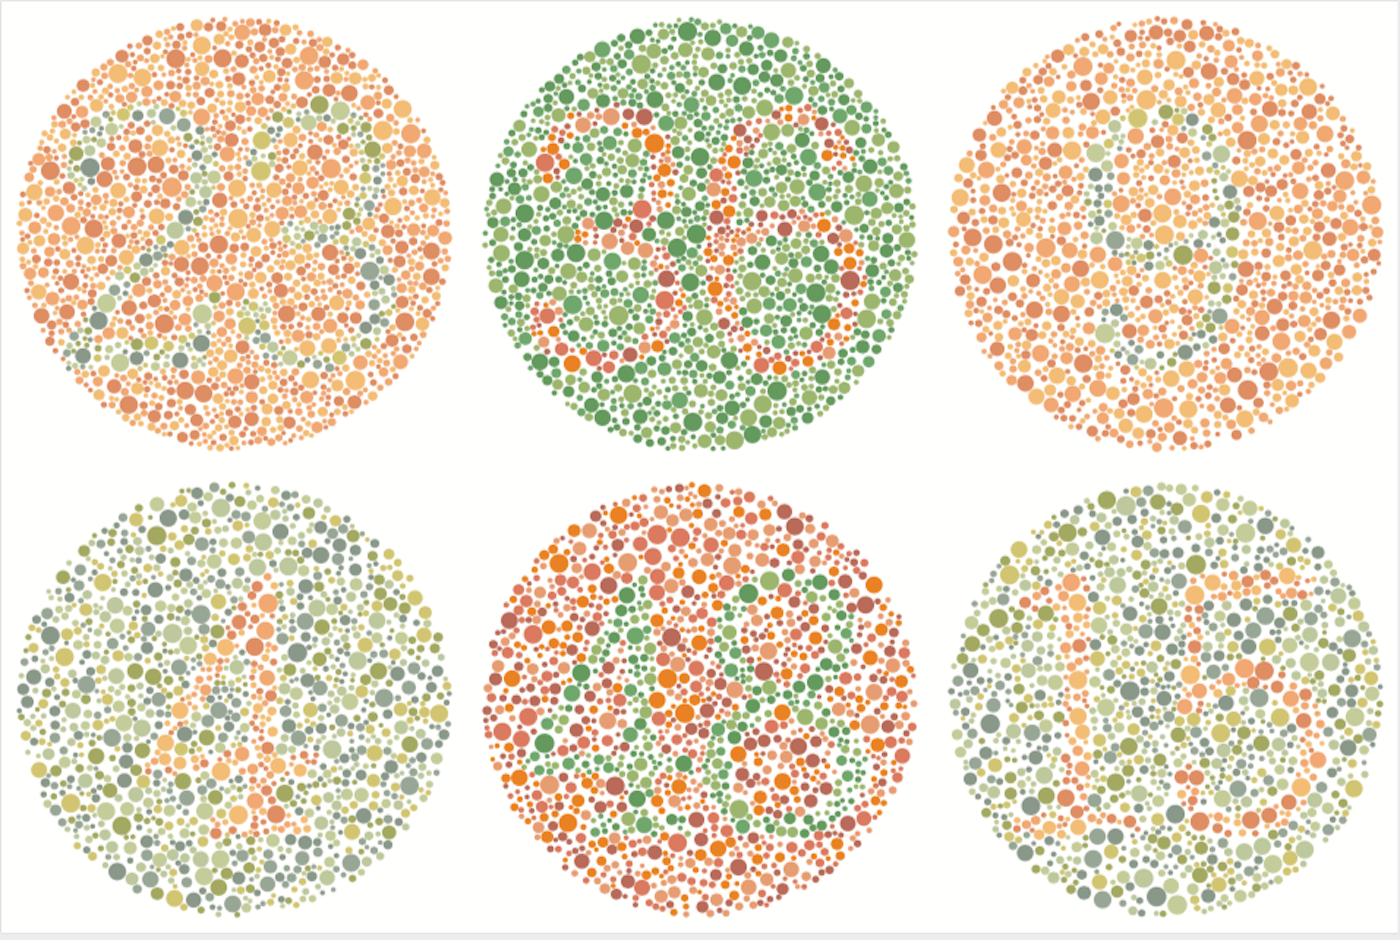 A test for color blindness. Image credit: LuckyBall/Shutterstock.com